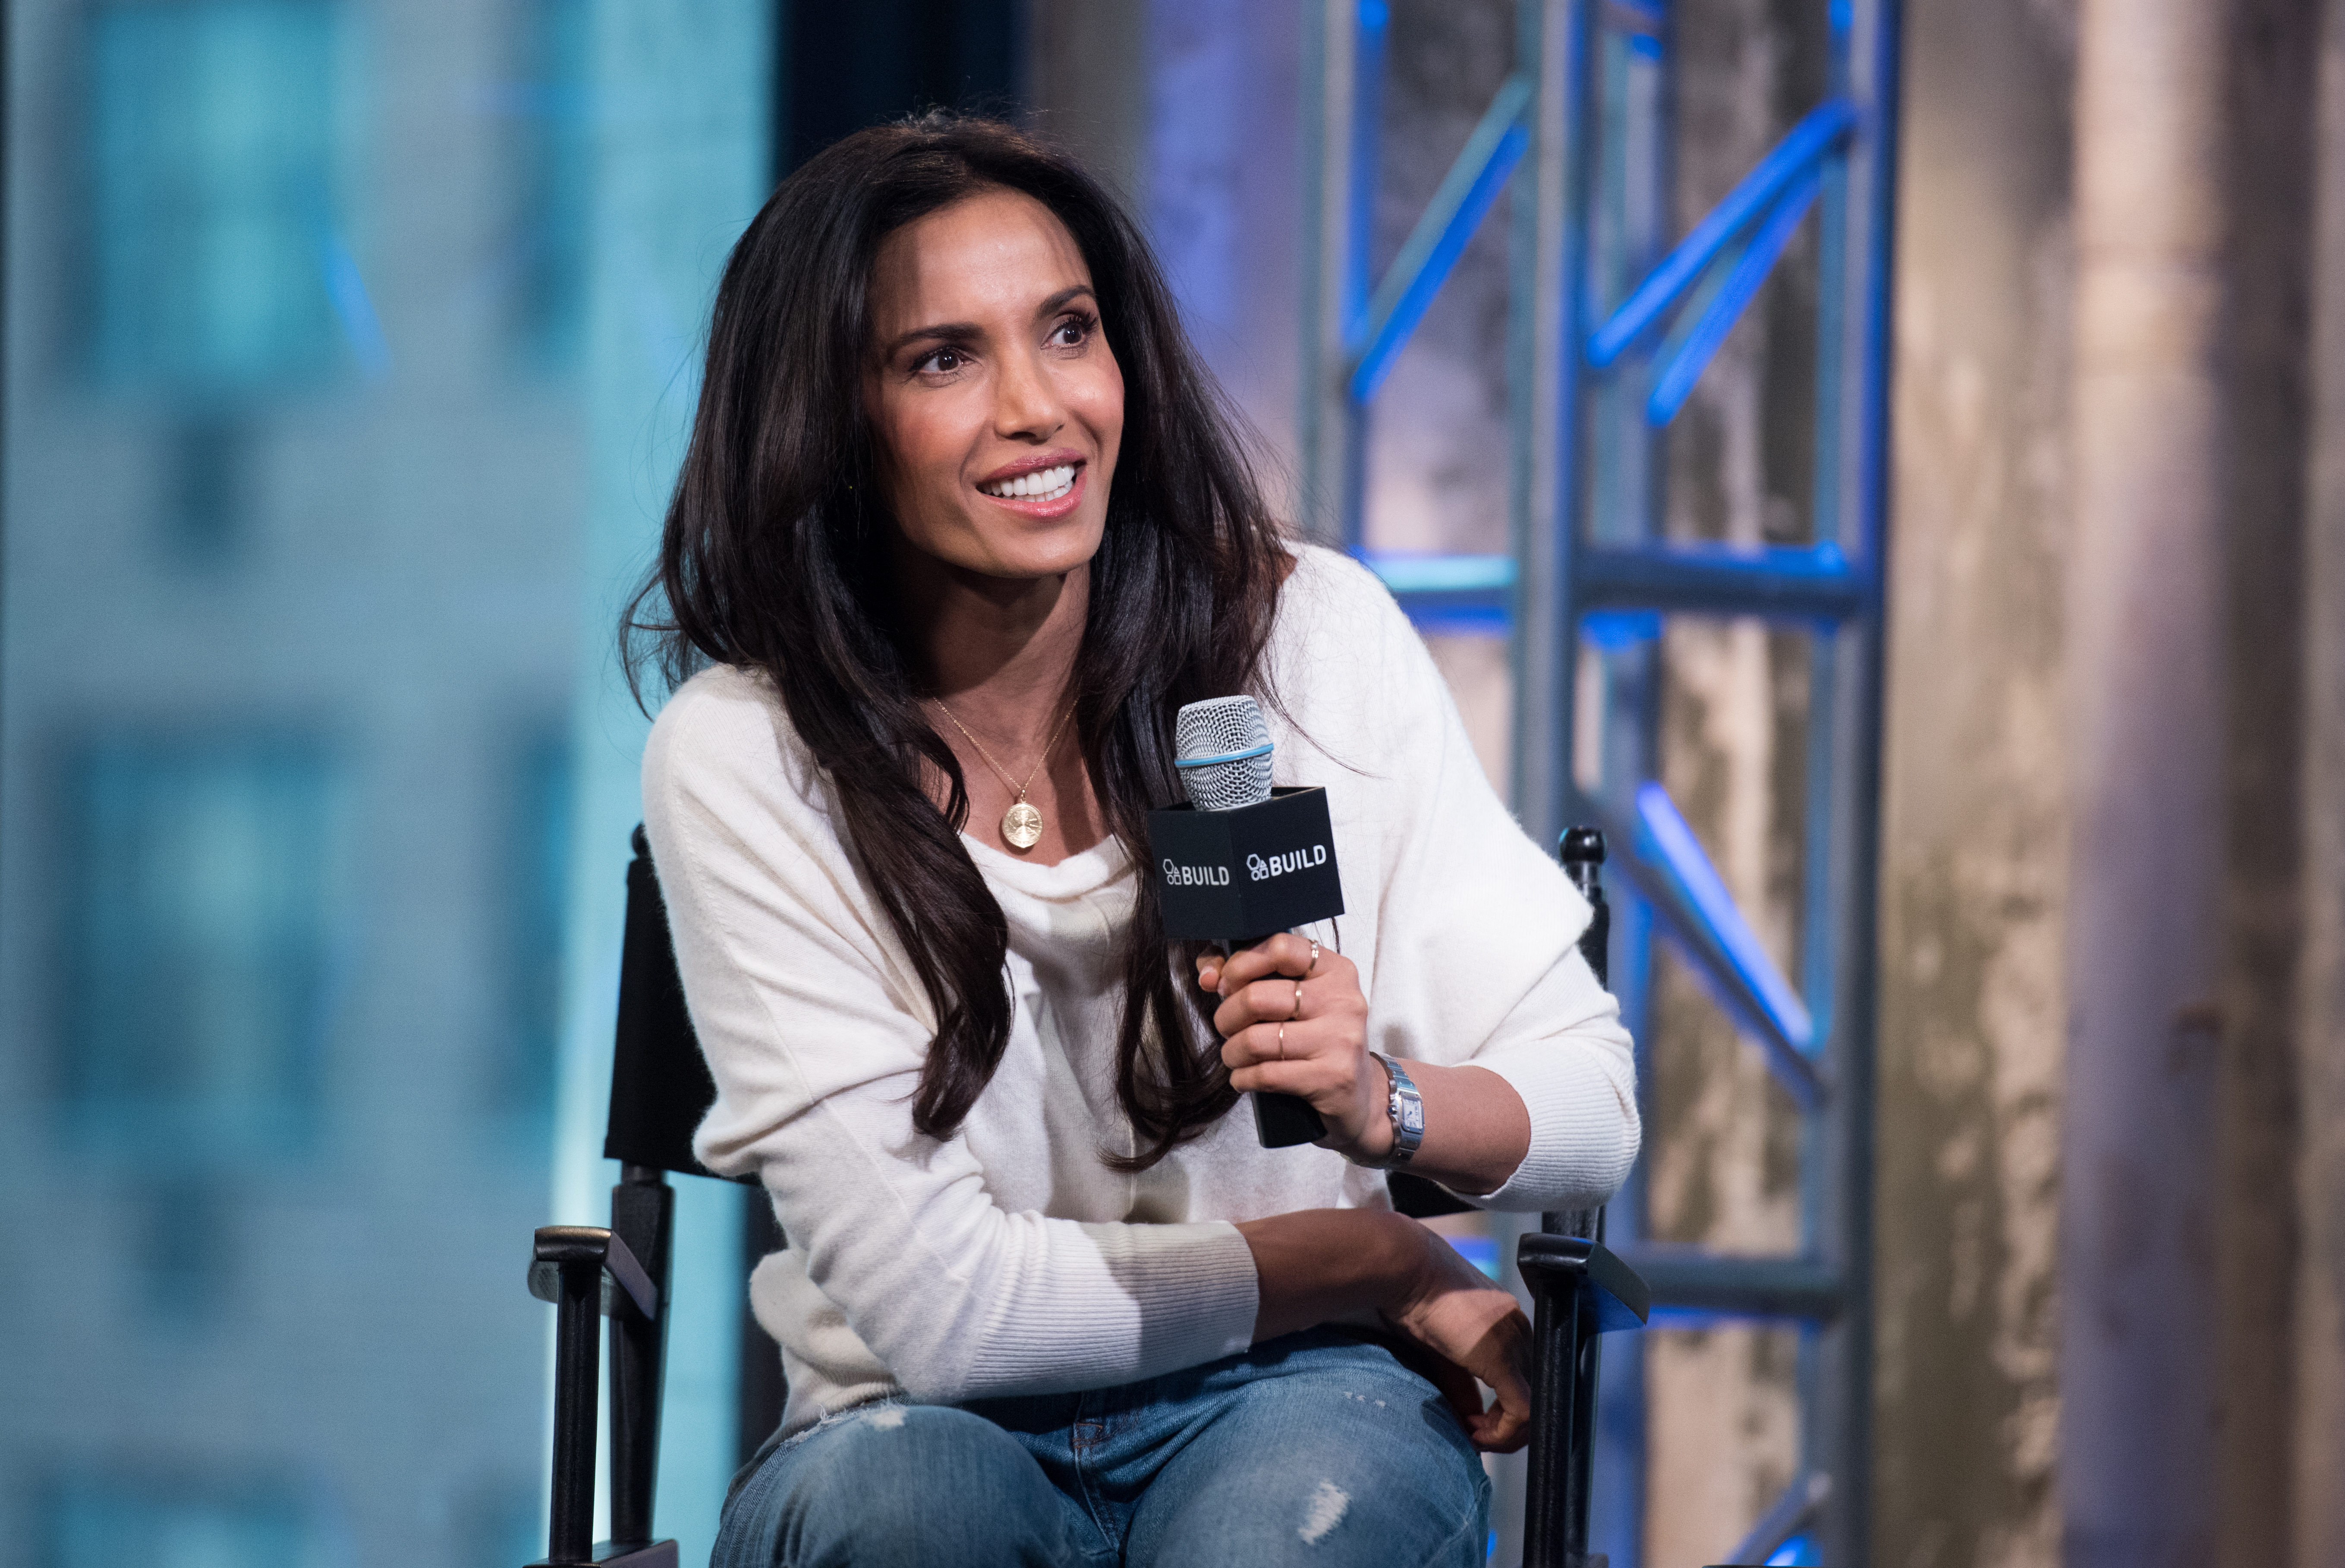 Padma Lakshmi visits AOL Hq for Build on March 8, 2016 in New York. Photos by Noam Galai